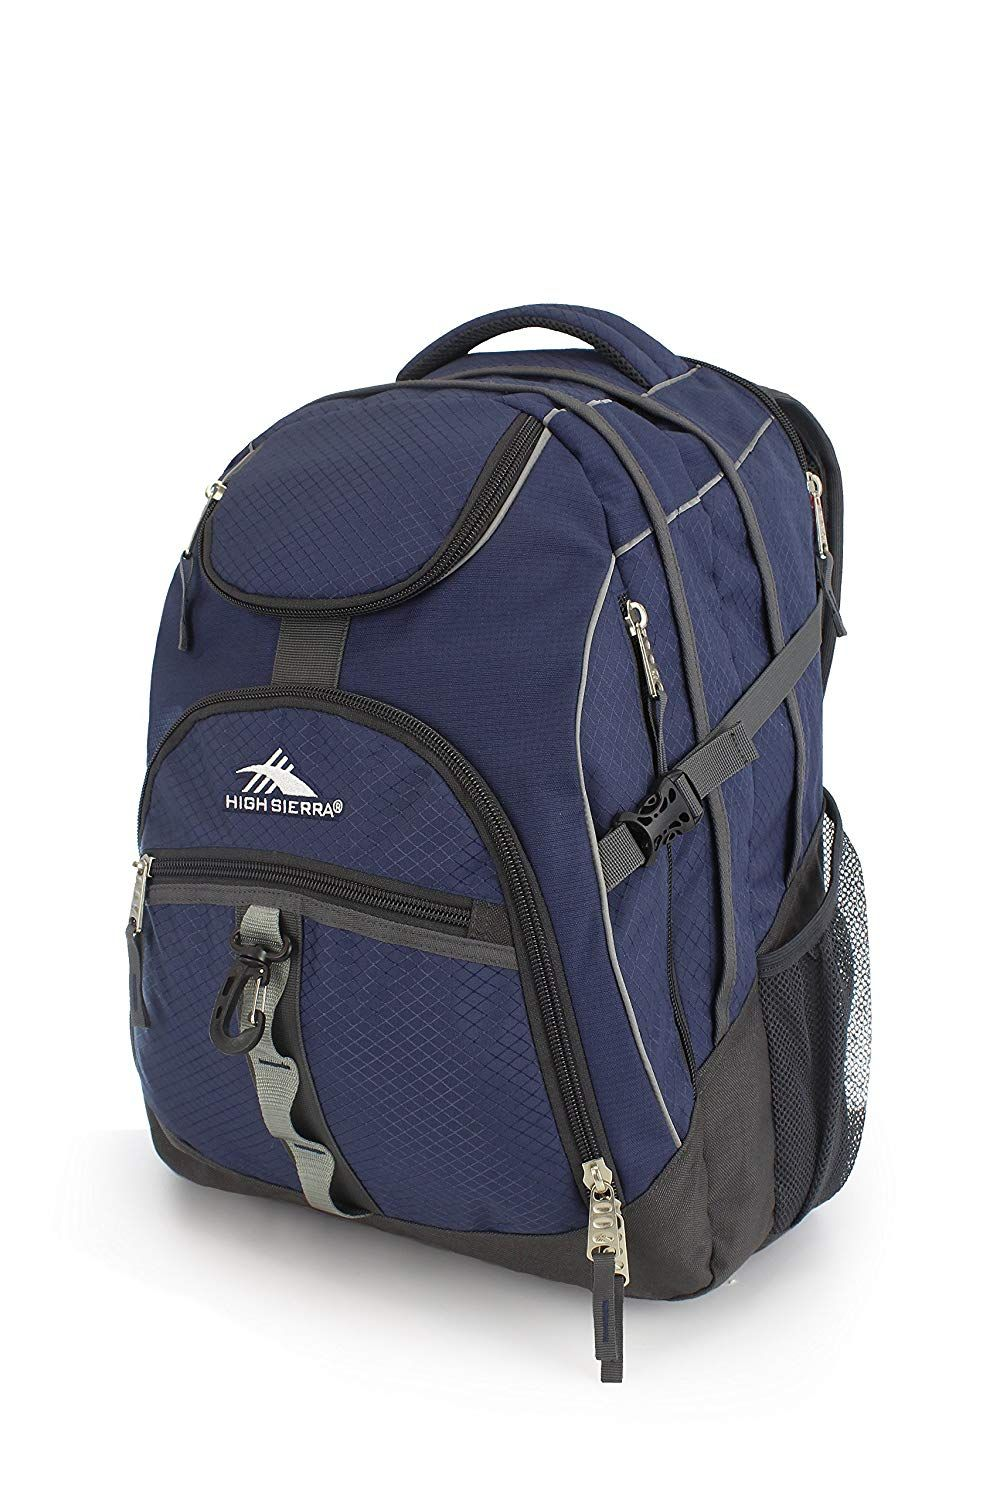 43ff15259bb High Sierra Access Backpack | My best pins | Backpacks, Laptop ...